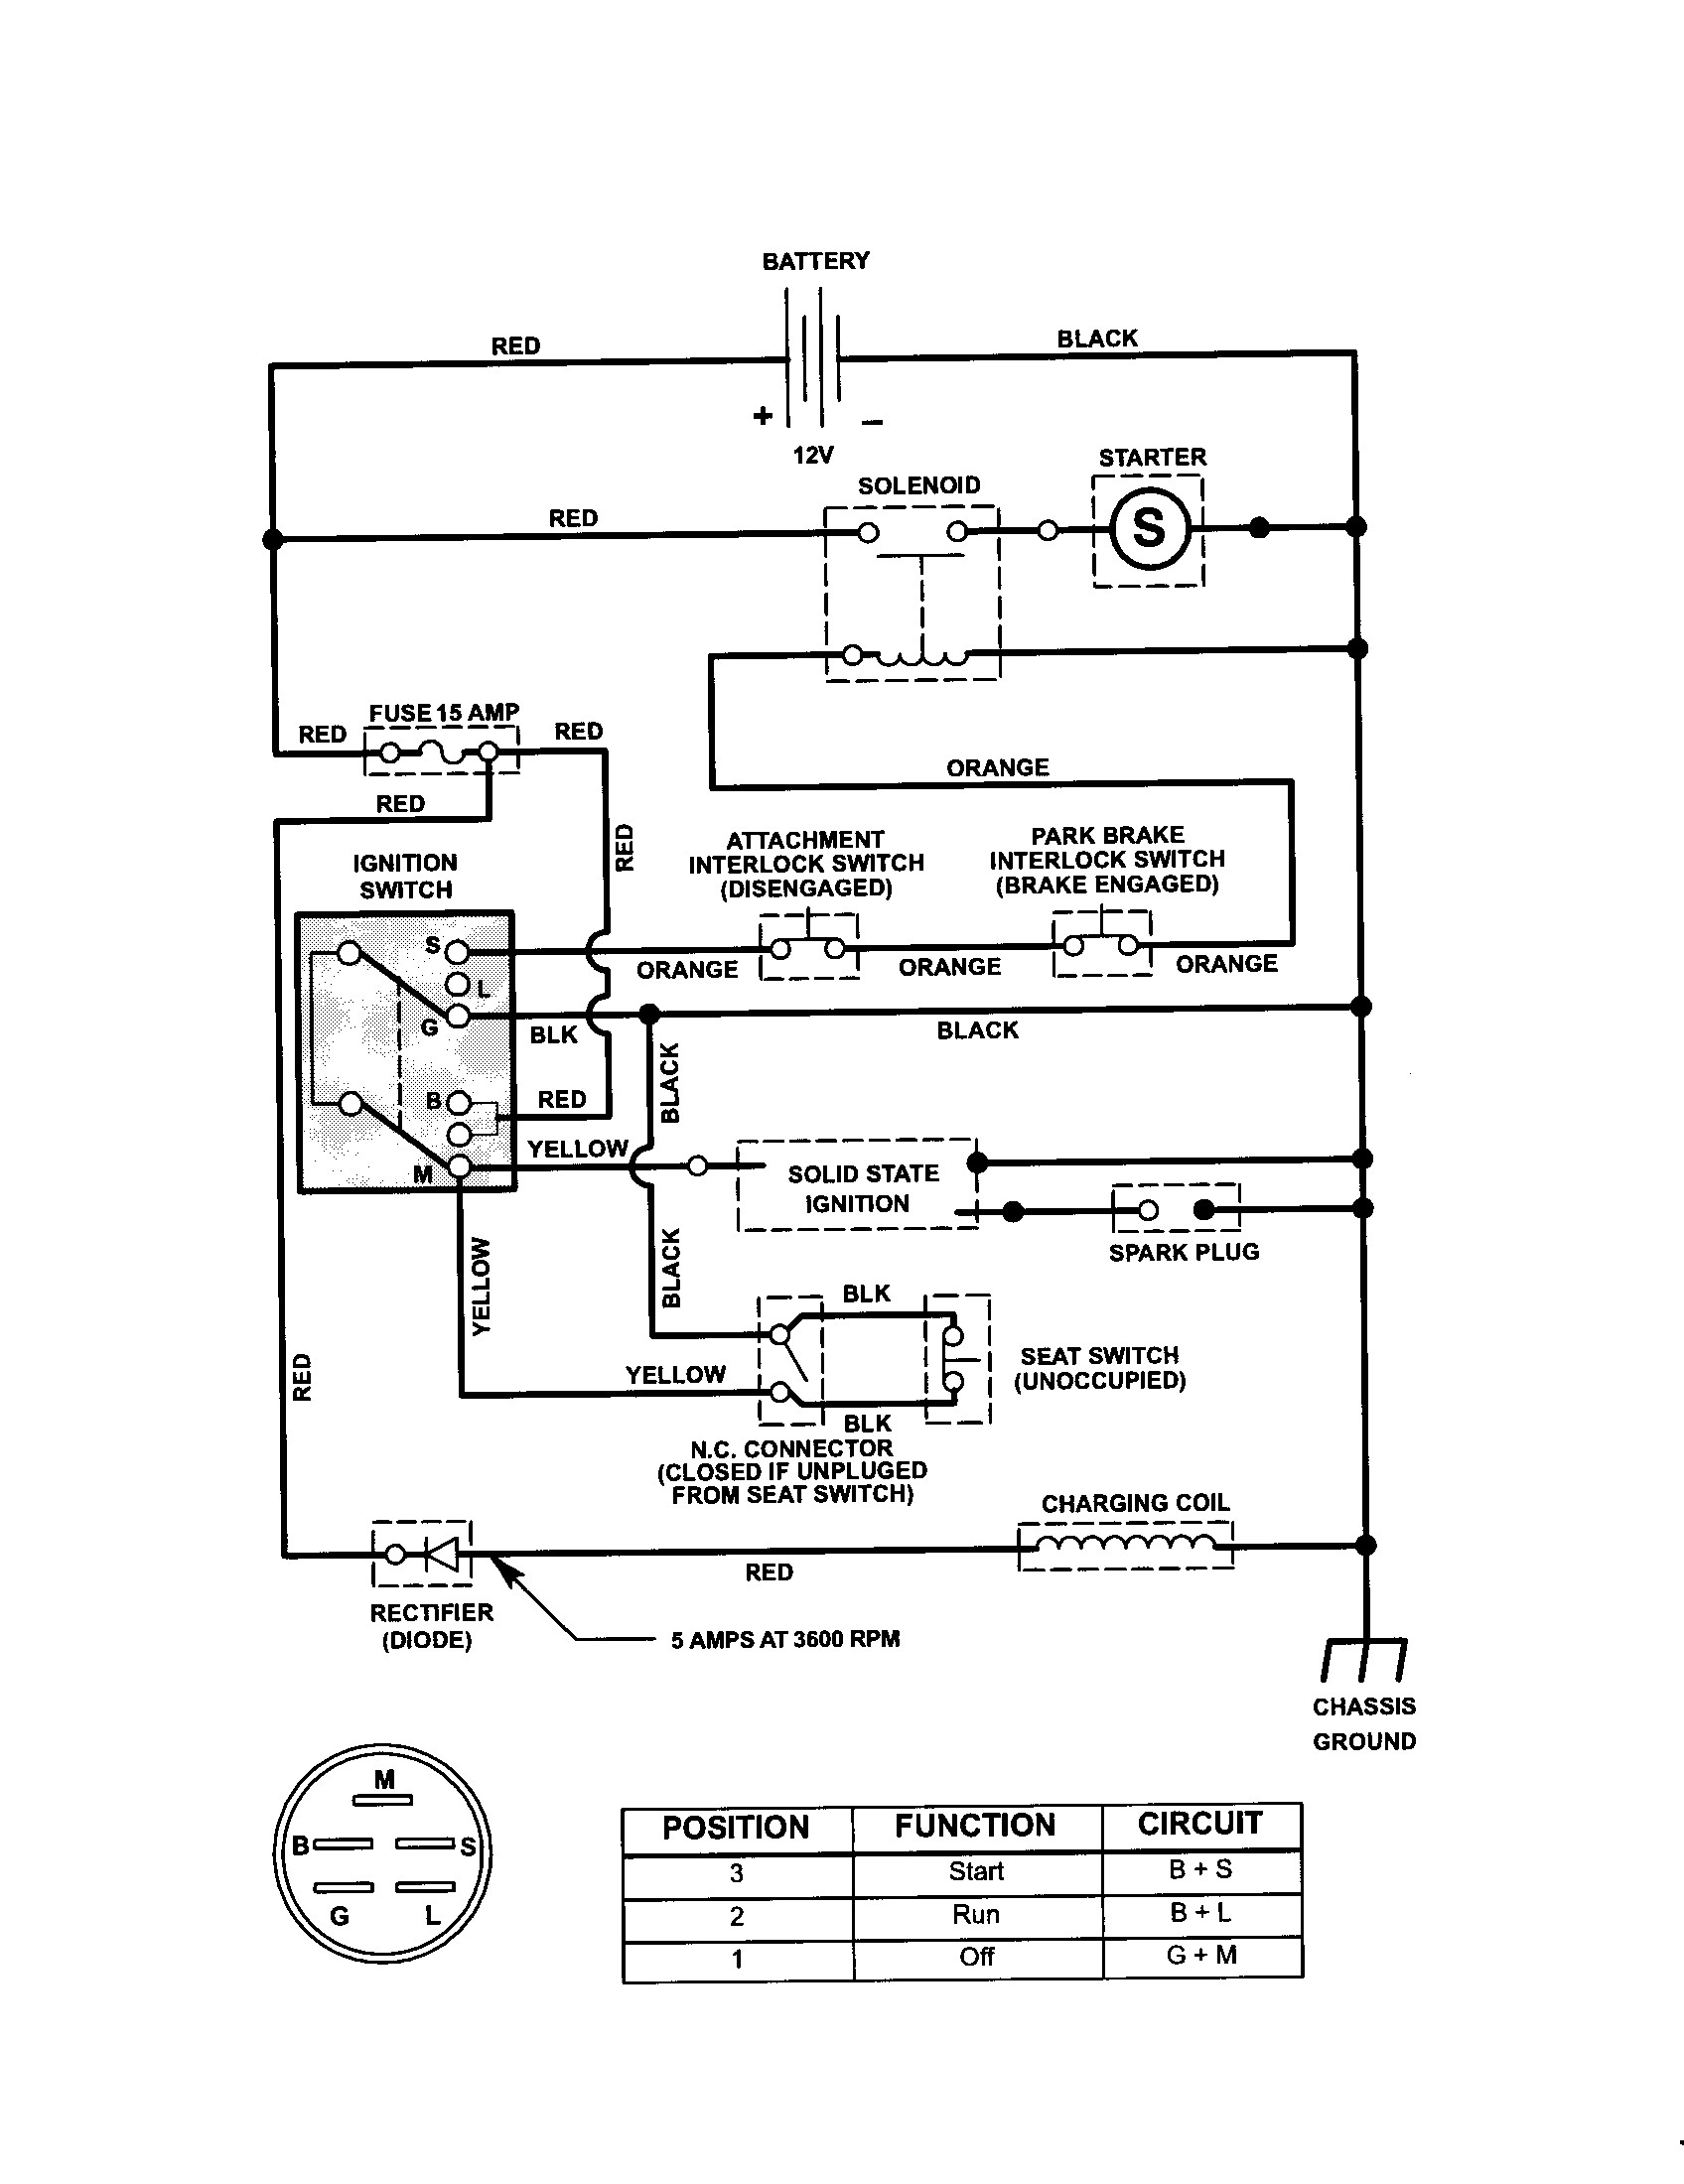 Craftsman Pto Switch Wiring Diagram - Wiring Diagram for Mtd Ignition  Switch New Craftsman Riding Mower